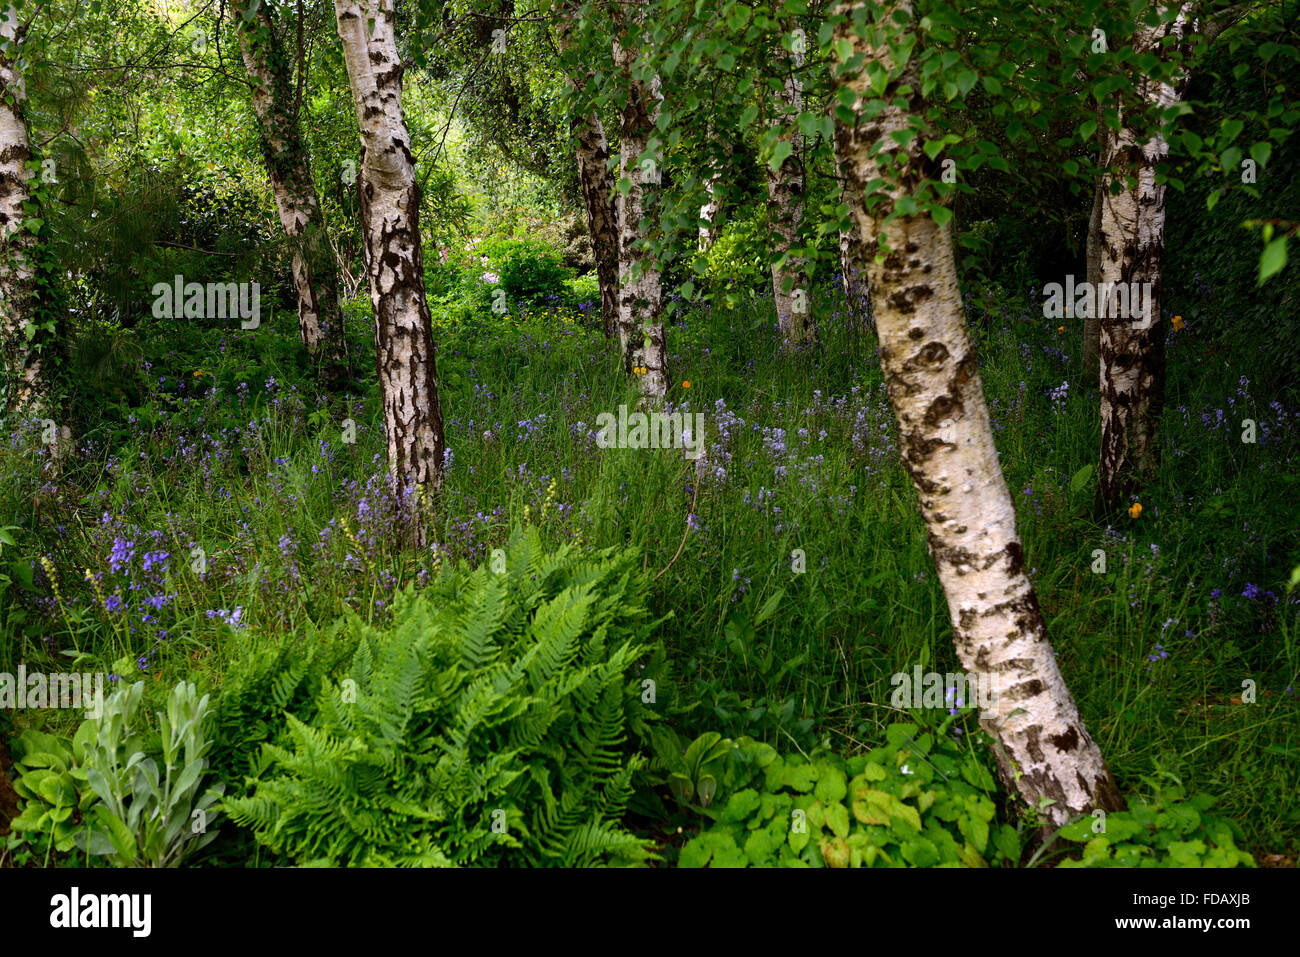 bluebells and ferns stock photos bluebells and ferns. Black Bedroom Furniture Sets. Home Design Ideas